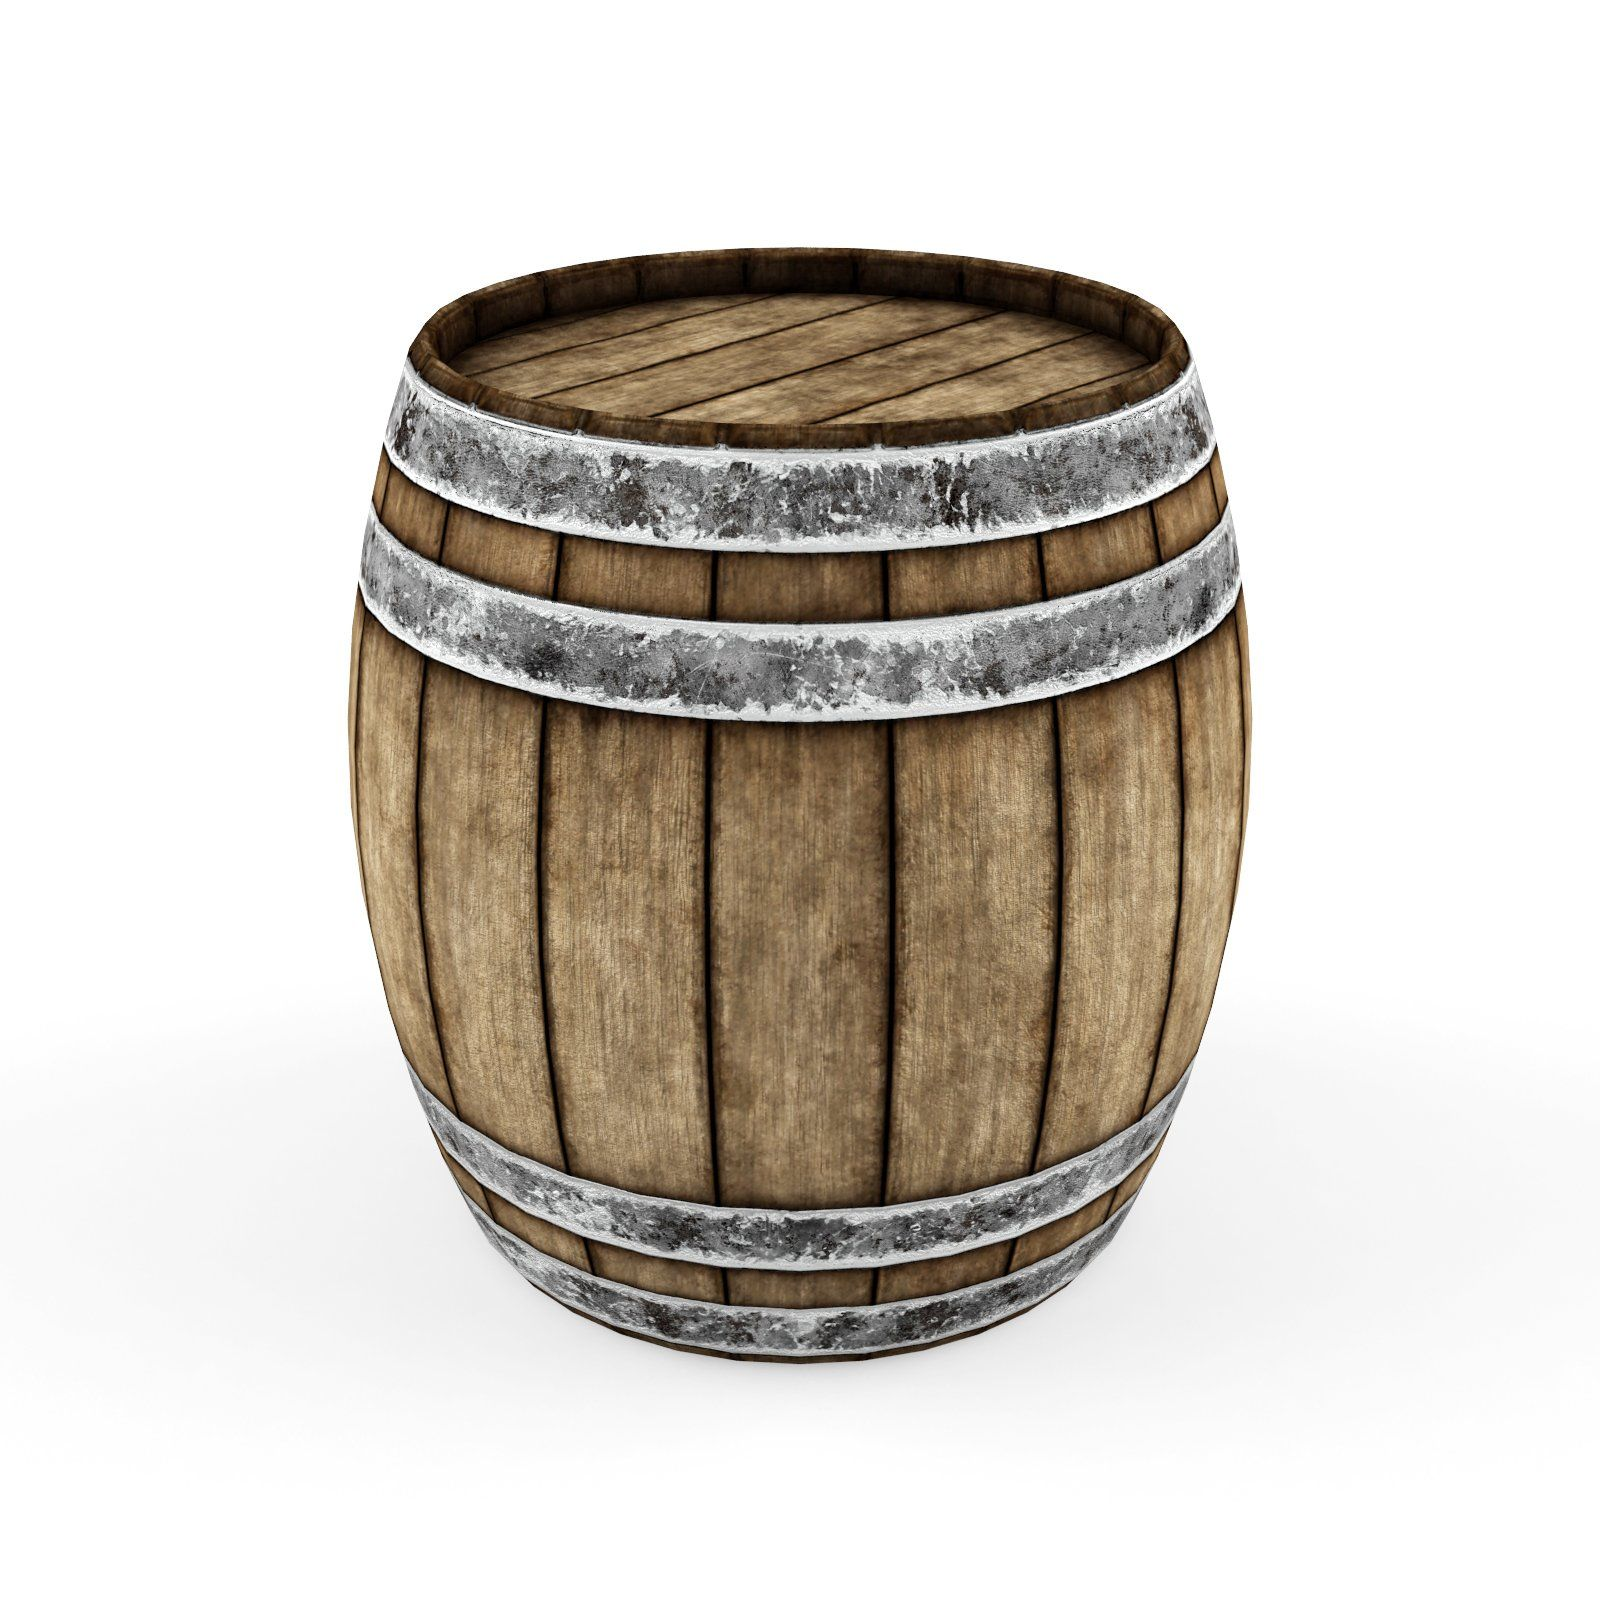 Lowpoly Model Old Wooden Barrel With Images Wooden Barrel